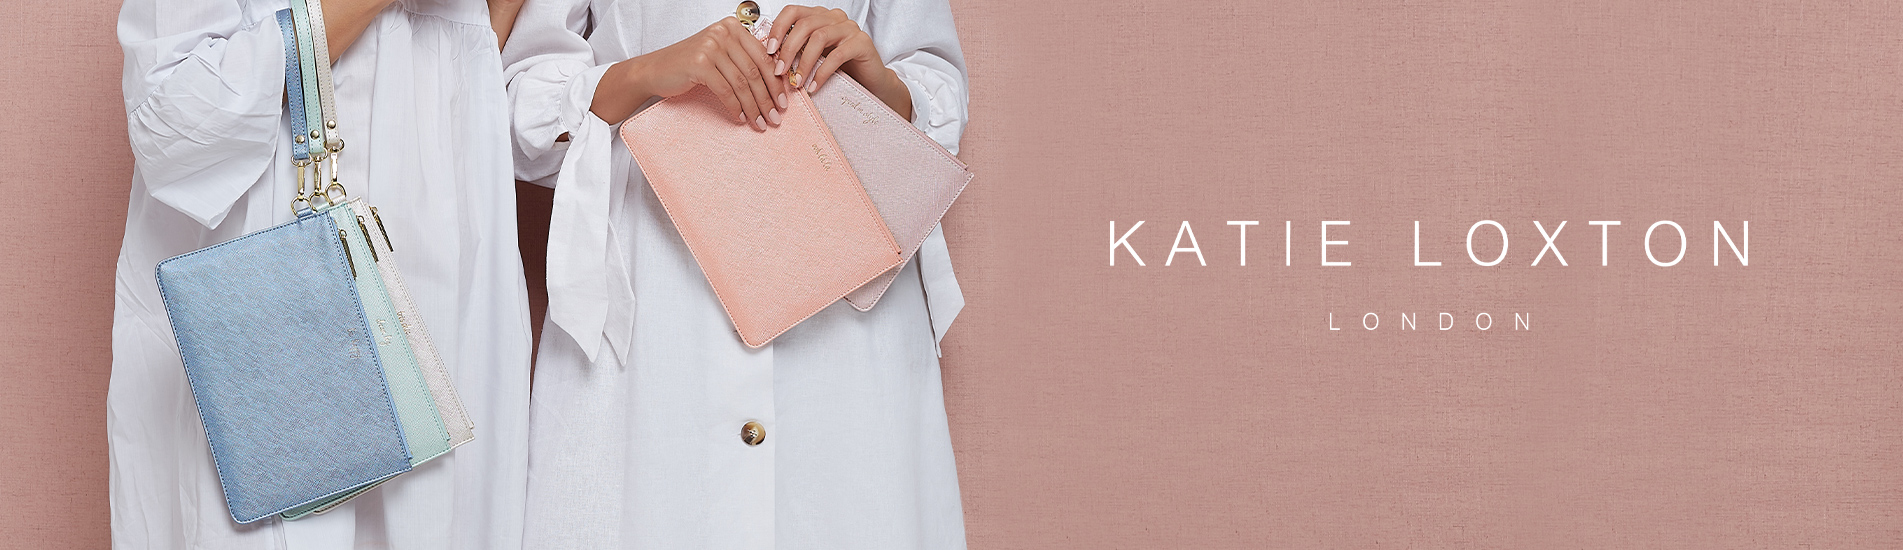 Banner for Katie Loxton Store Stafford.